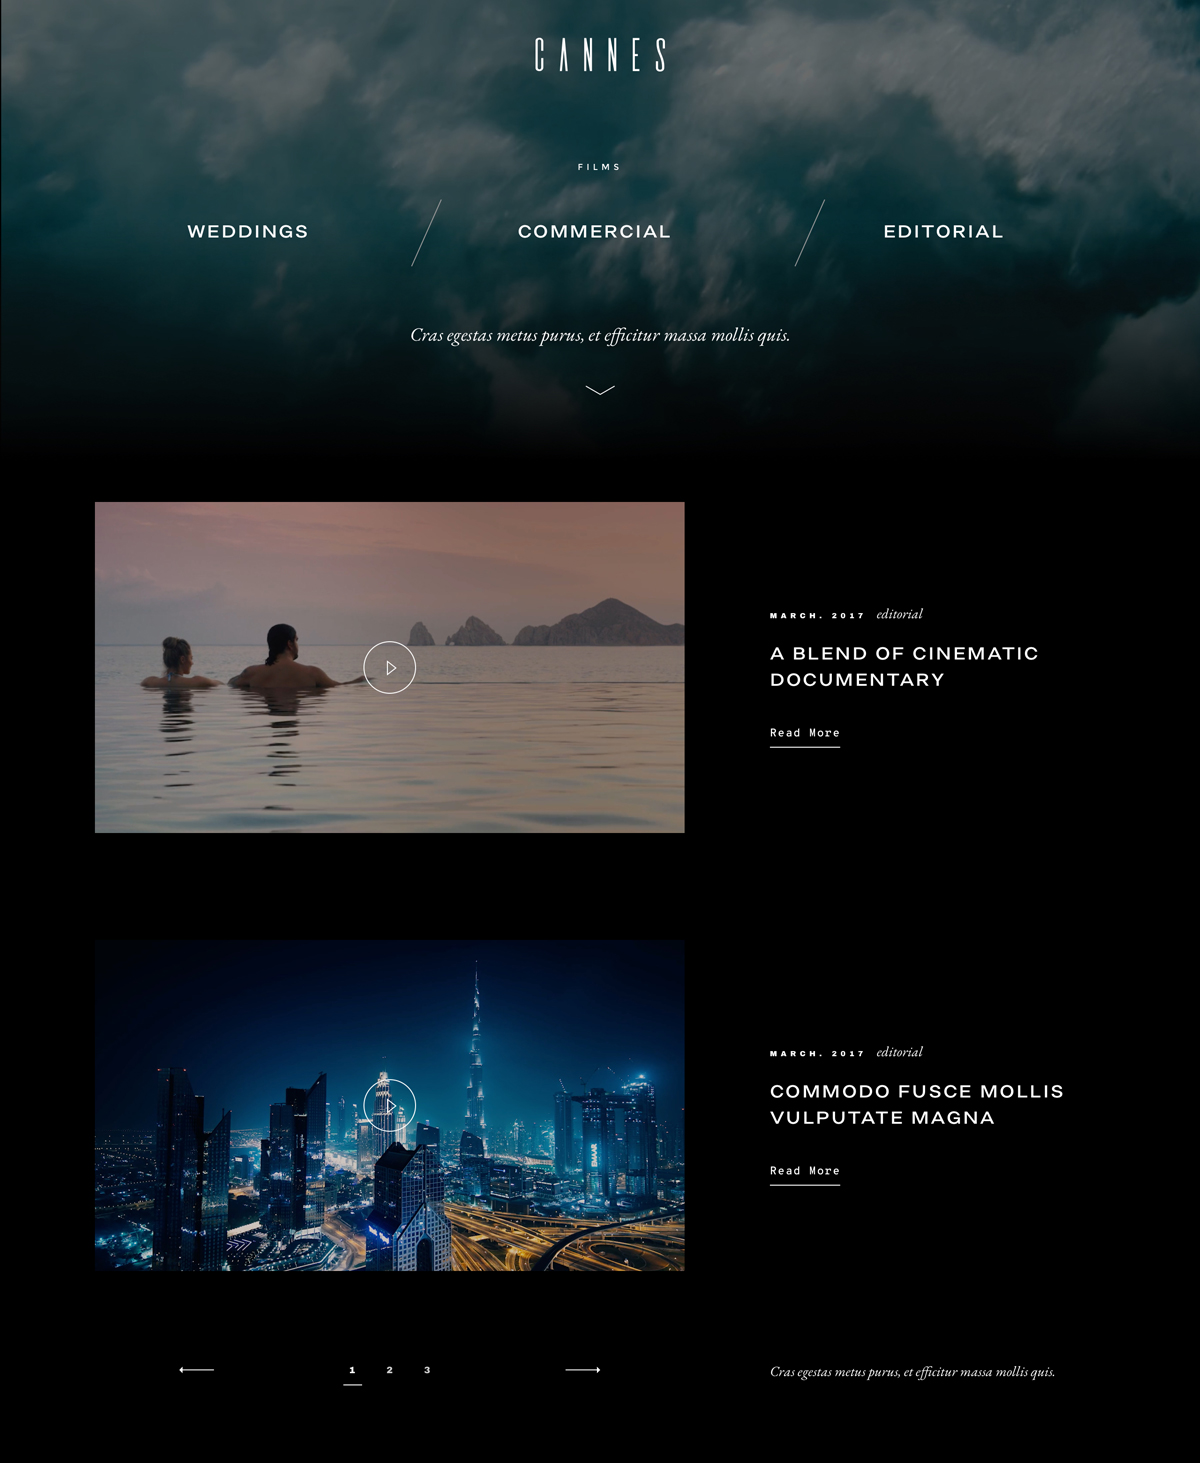 cannes-giveaway-videography-website-theme-portfolio listing page layout